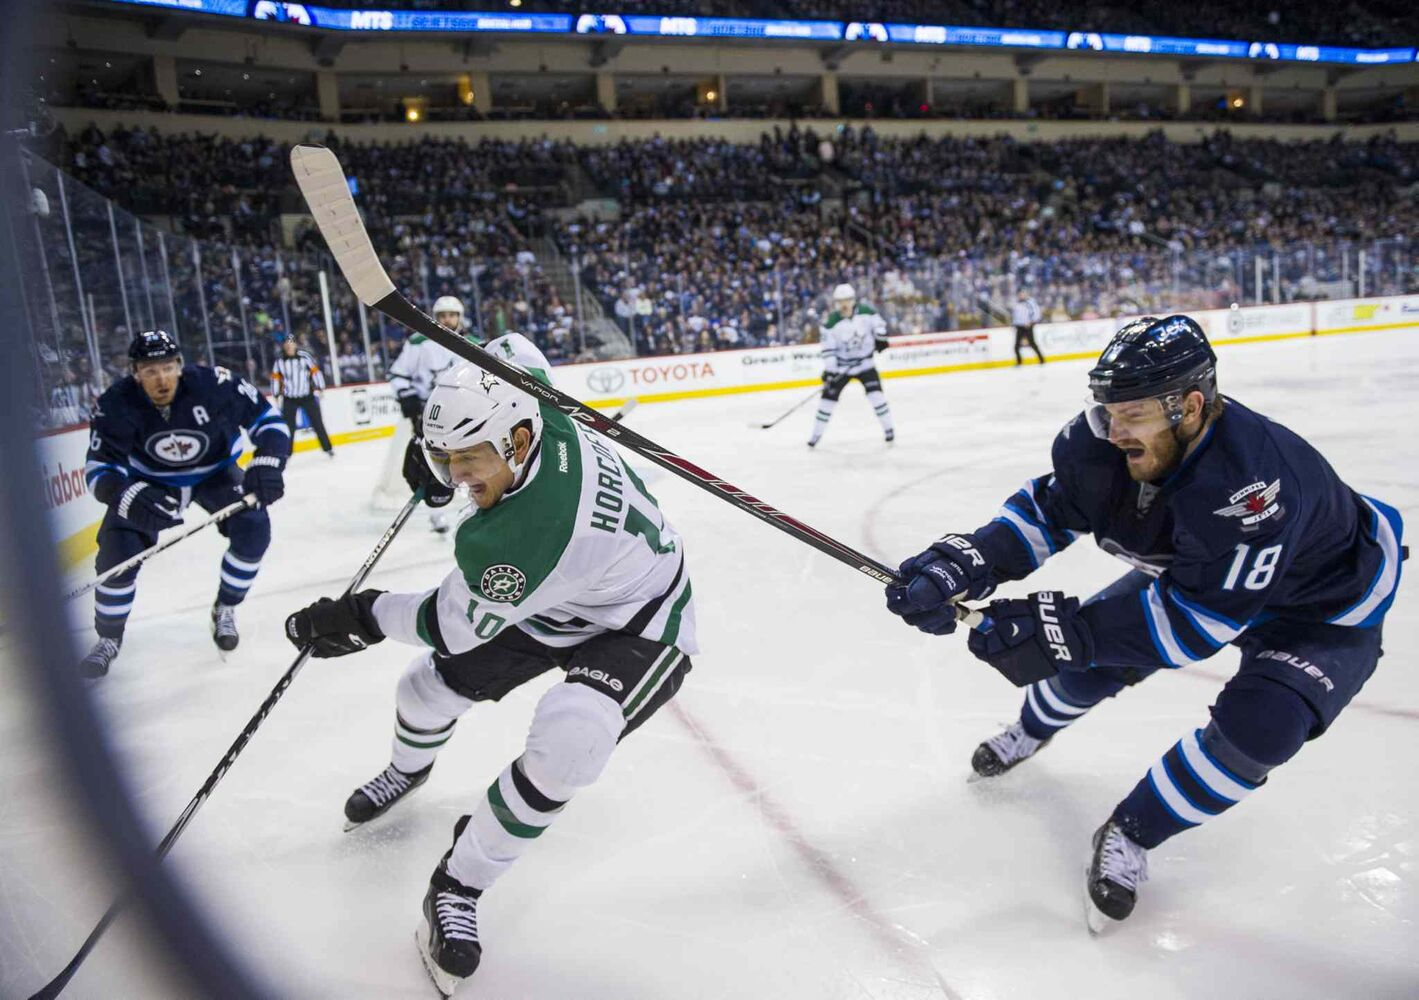 Winnipeg Jets Bryan Little (#18) collides with Dallas Stars Shawn Horcoff (#10) during second period. (David Lipnowski / Winnipeg Free Press)